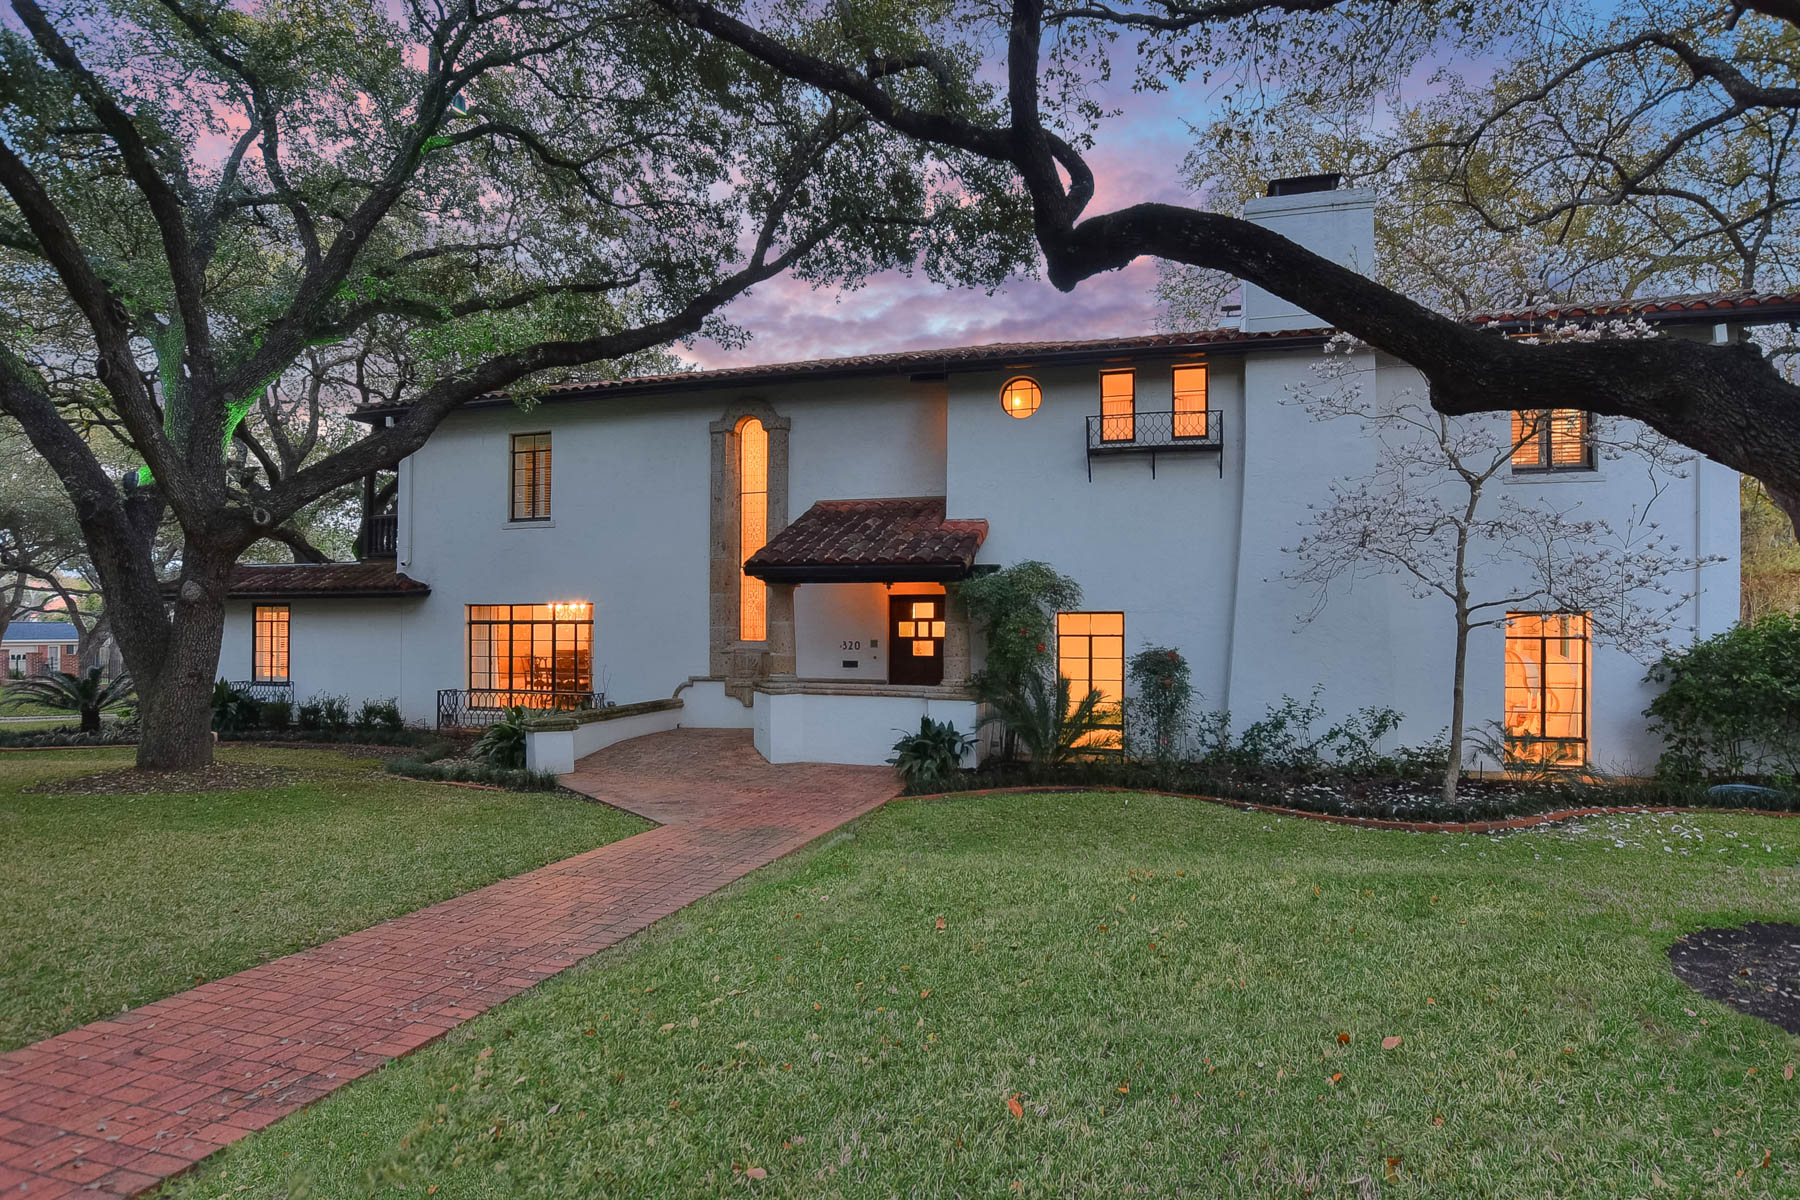 Single Family Home for Sale at Prestigious Spanish Colonial Nestled in Olmos Park 320 East Mandalay Drive San Antonio, Texas 78212 United States